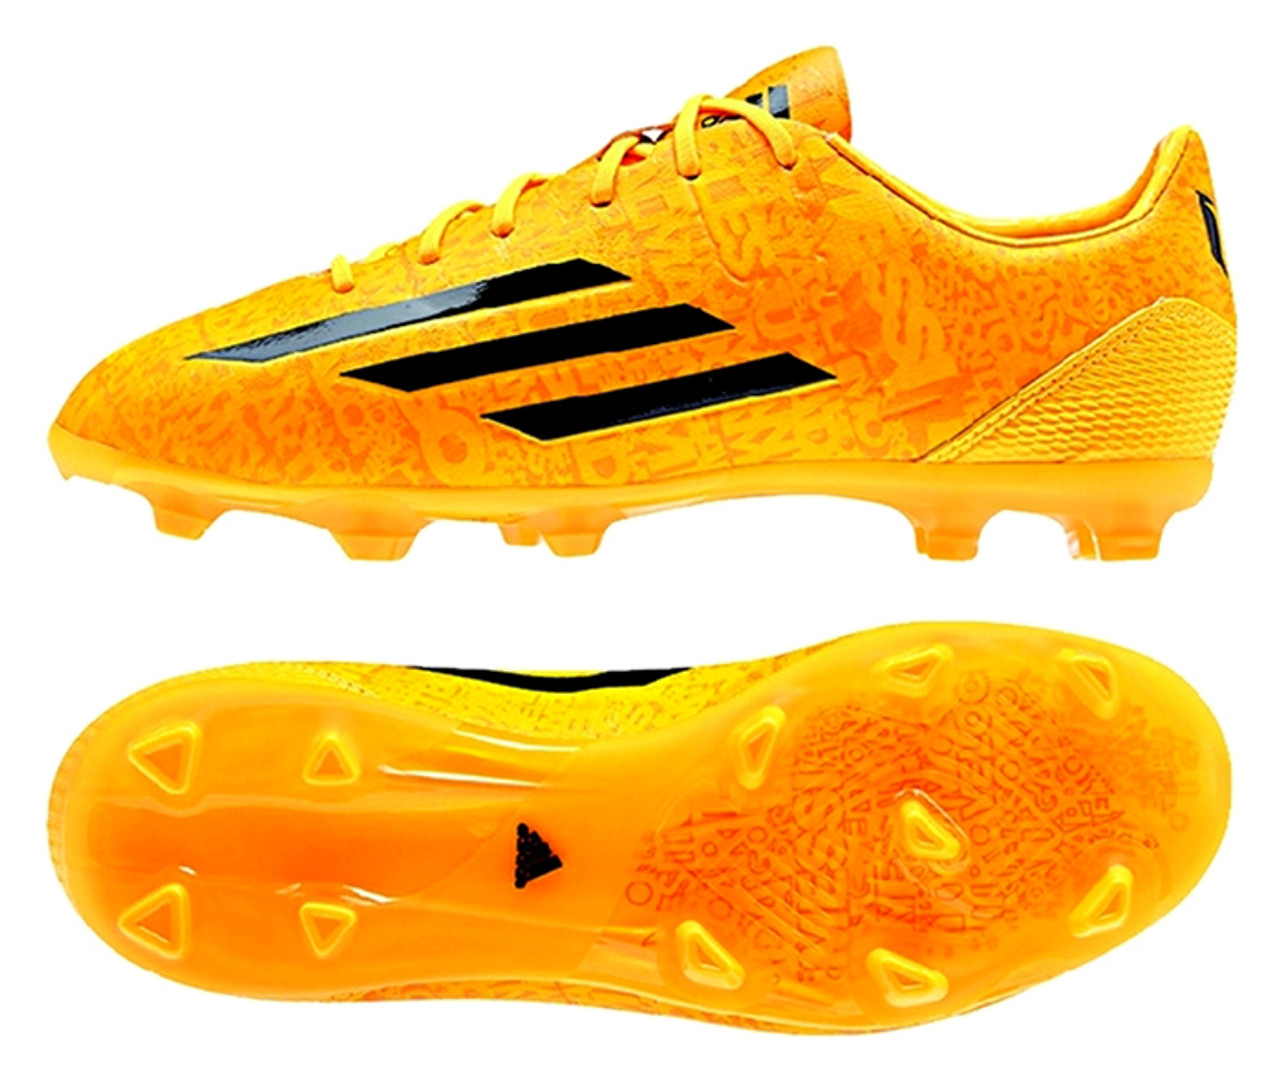 ADIDAS F50 ADIZERO FG MESSI GOLD firm ground soccer cleats